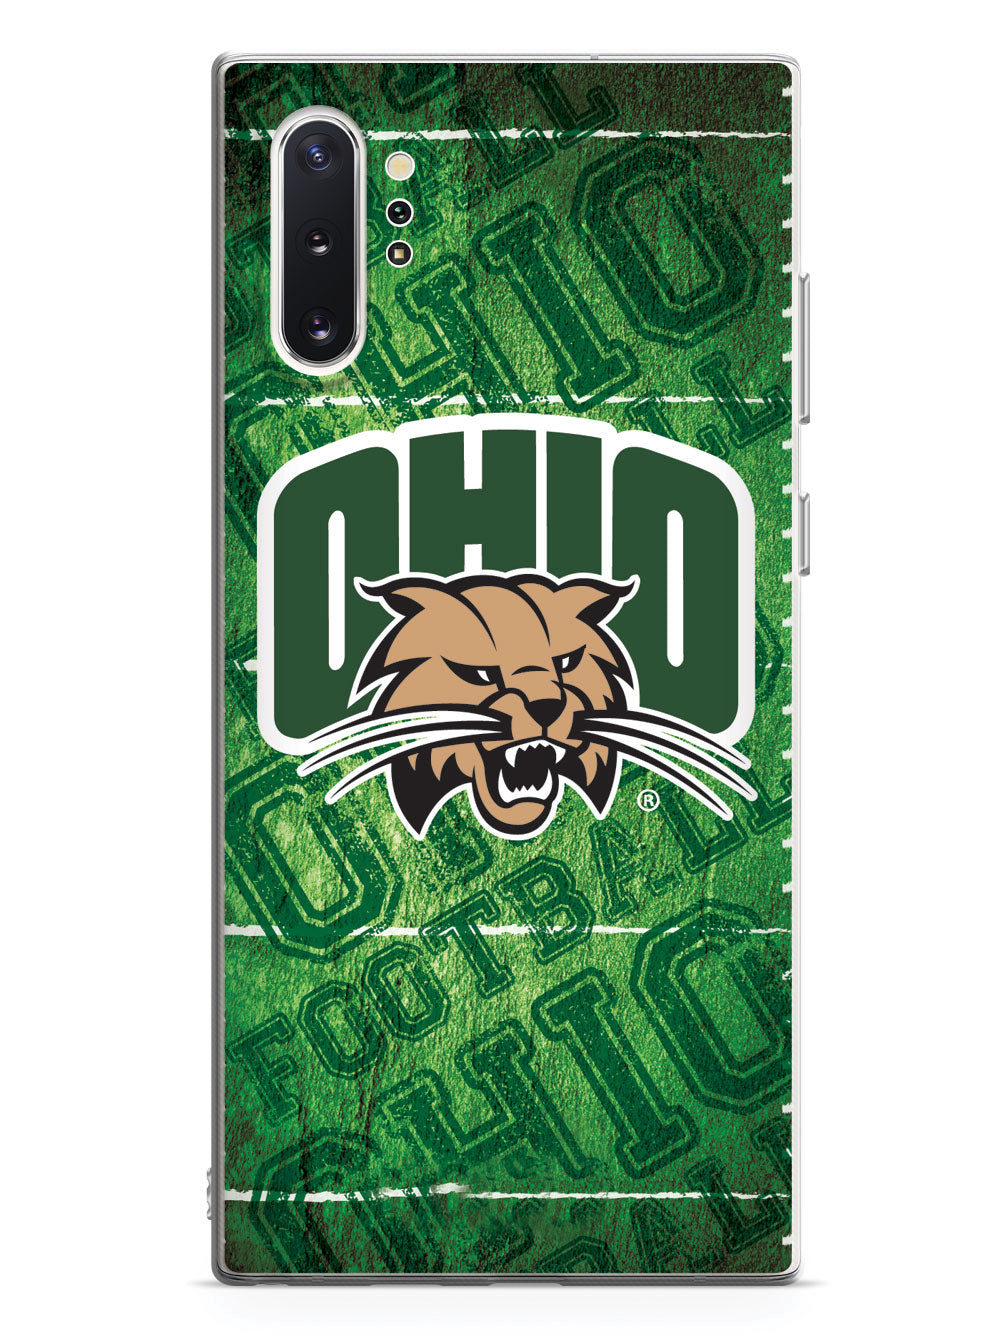 Ohio University Bobcats - Football Case